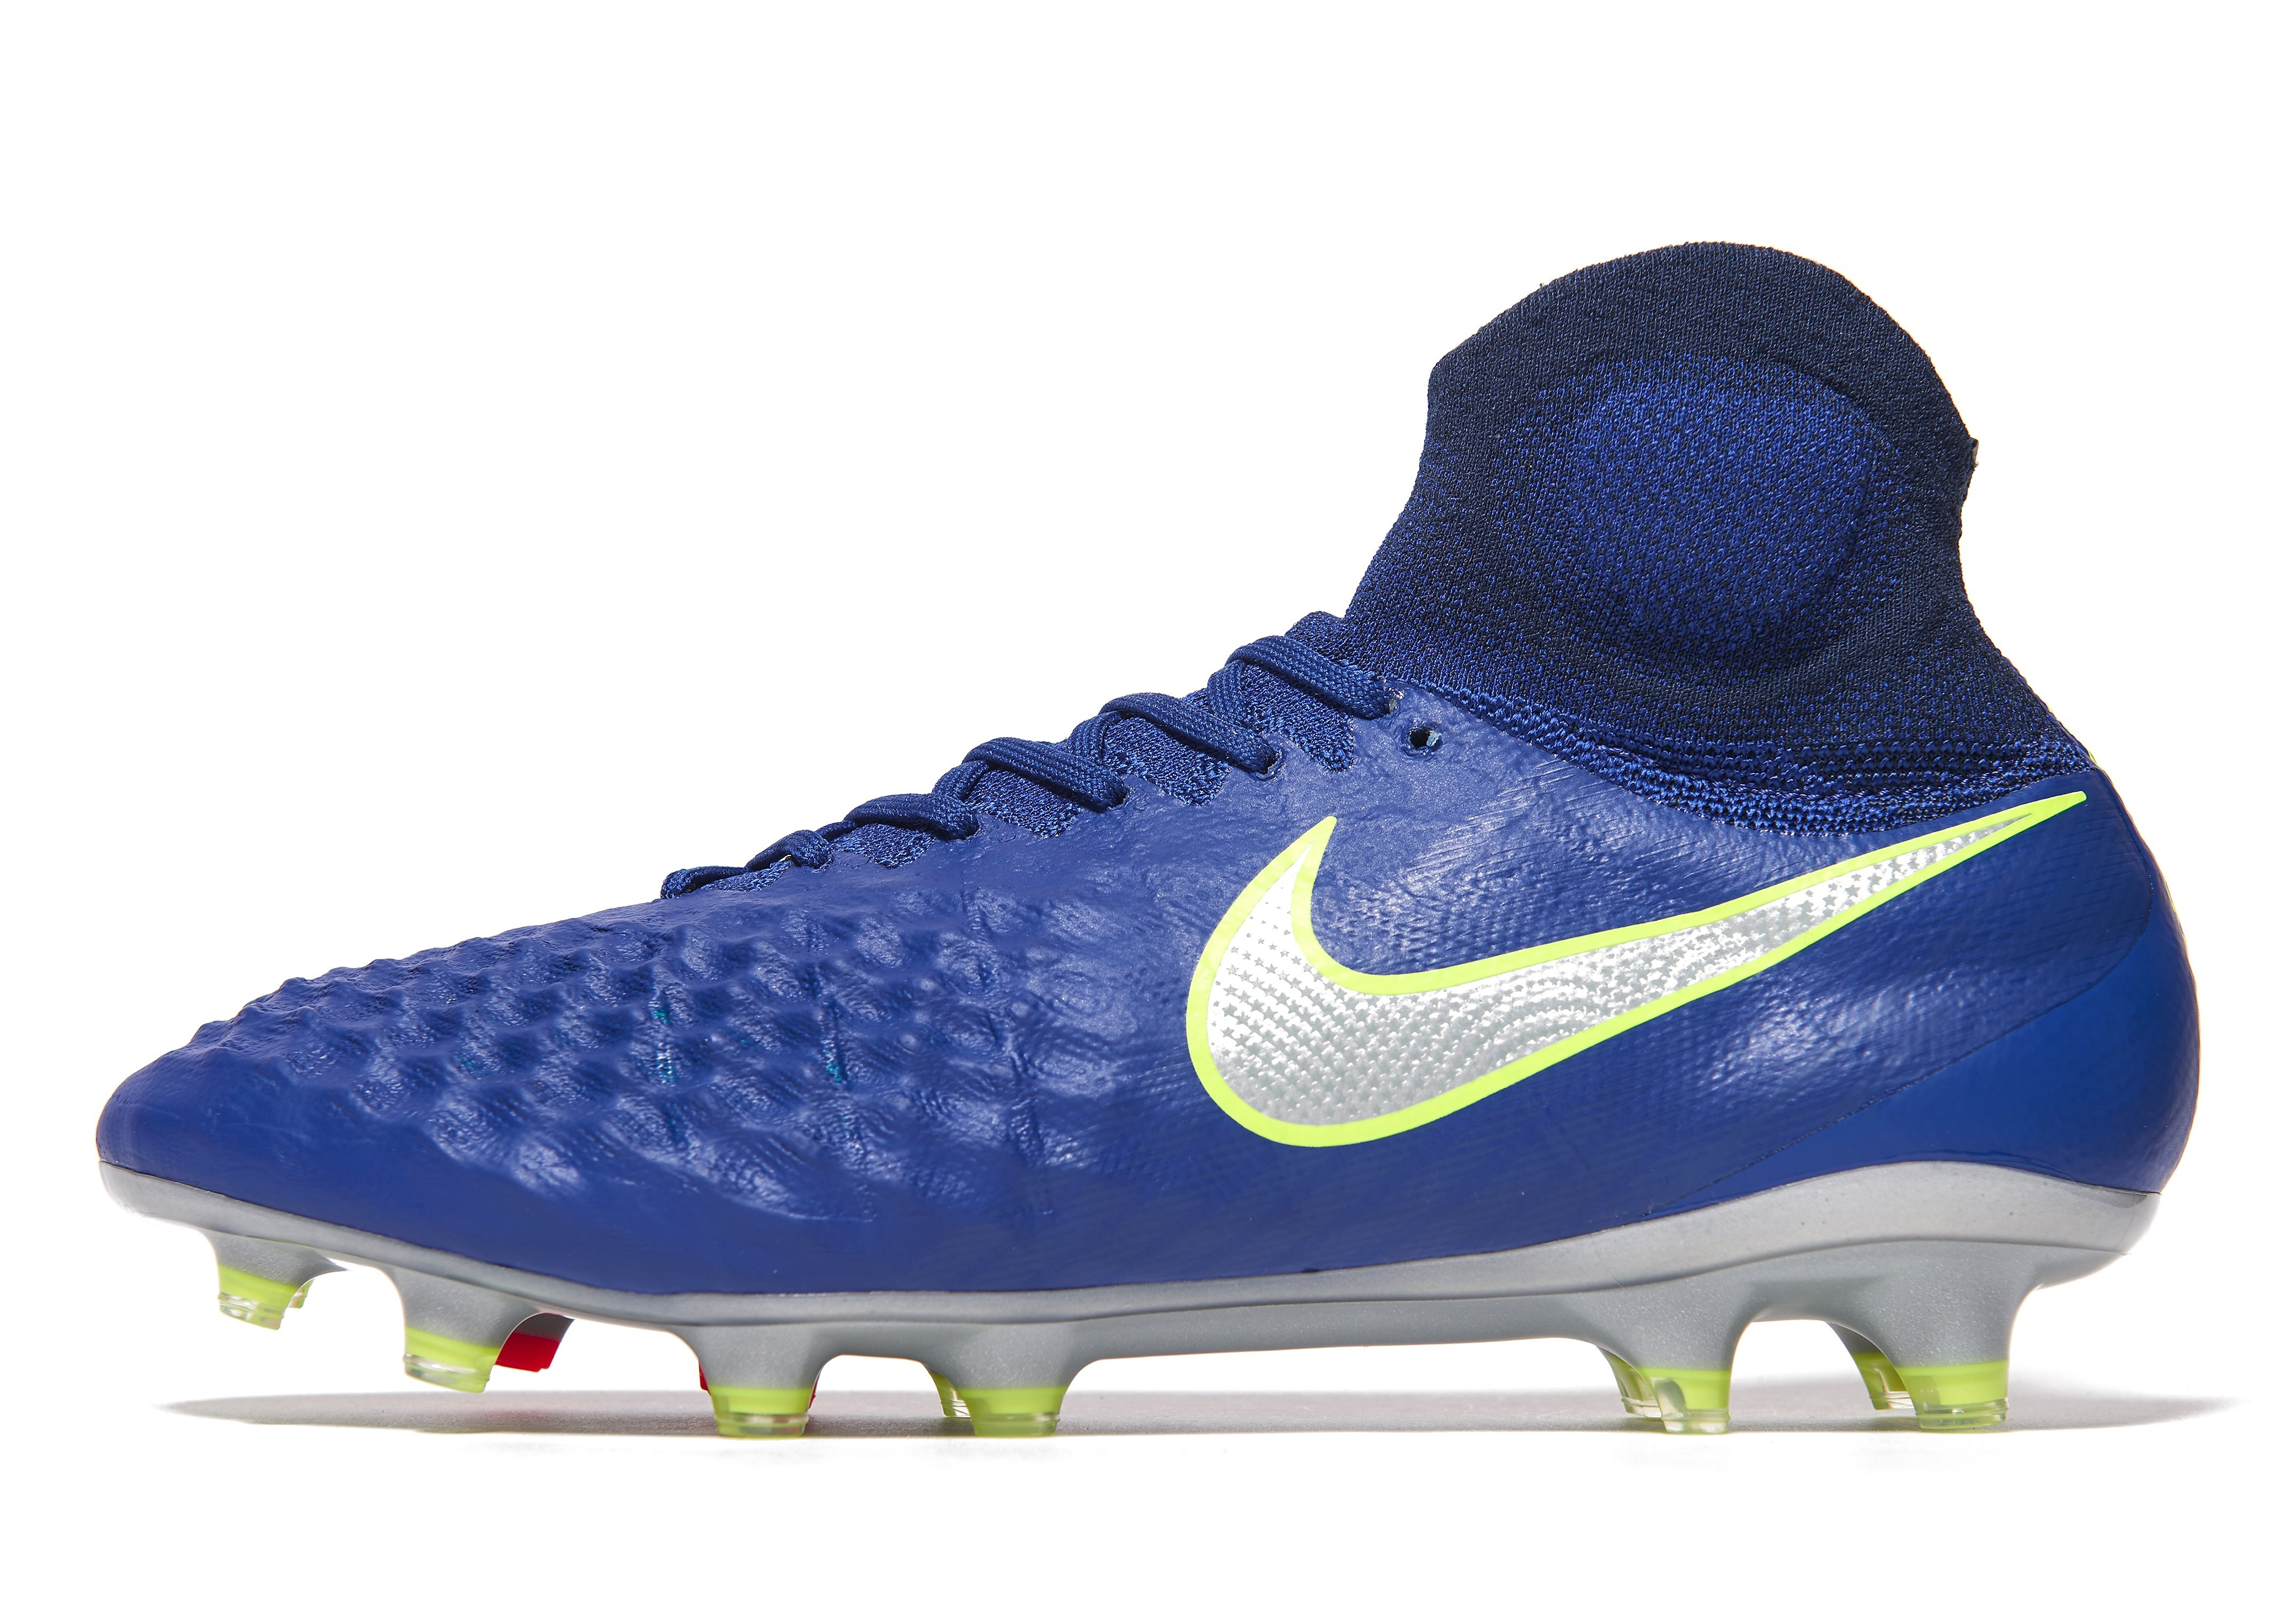 Nike Time To Shine Magista Obra II FG